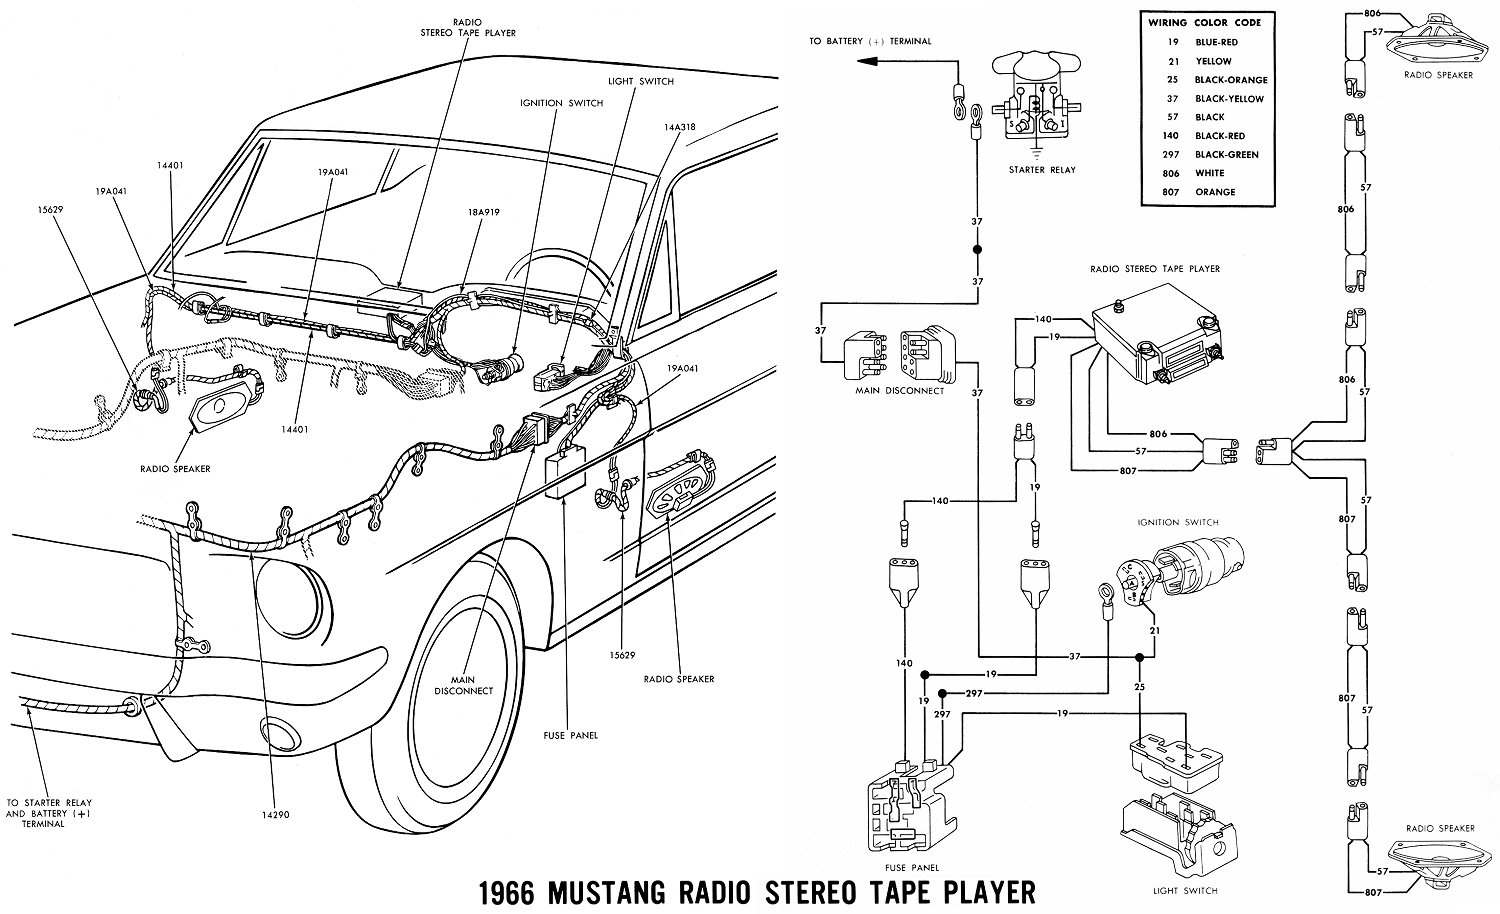 hight resolution of 1966 mustang wiring diagrams average joe restoration rh averagejoerestoration com 1966 mustang fuse diagram 1966 ford mustang fuse box diagram